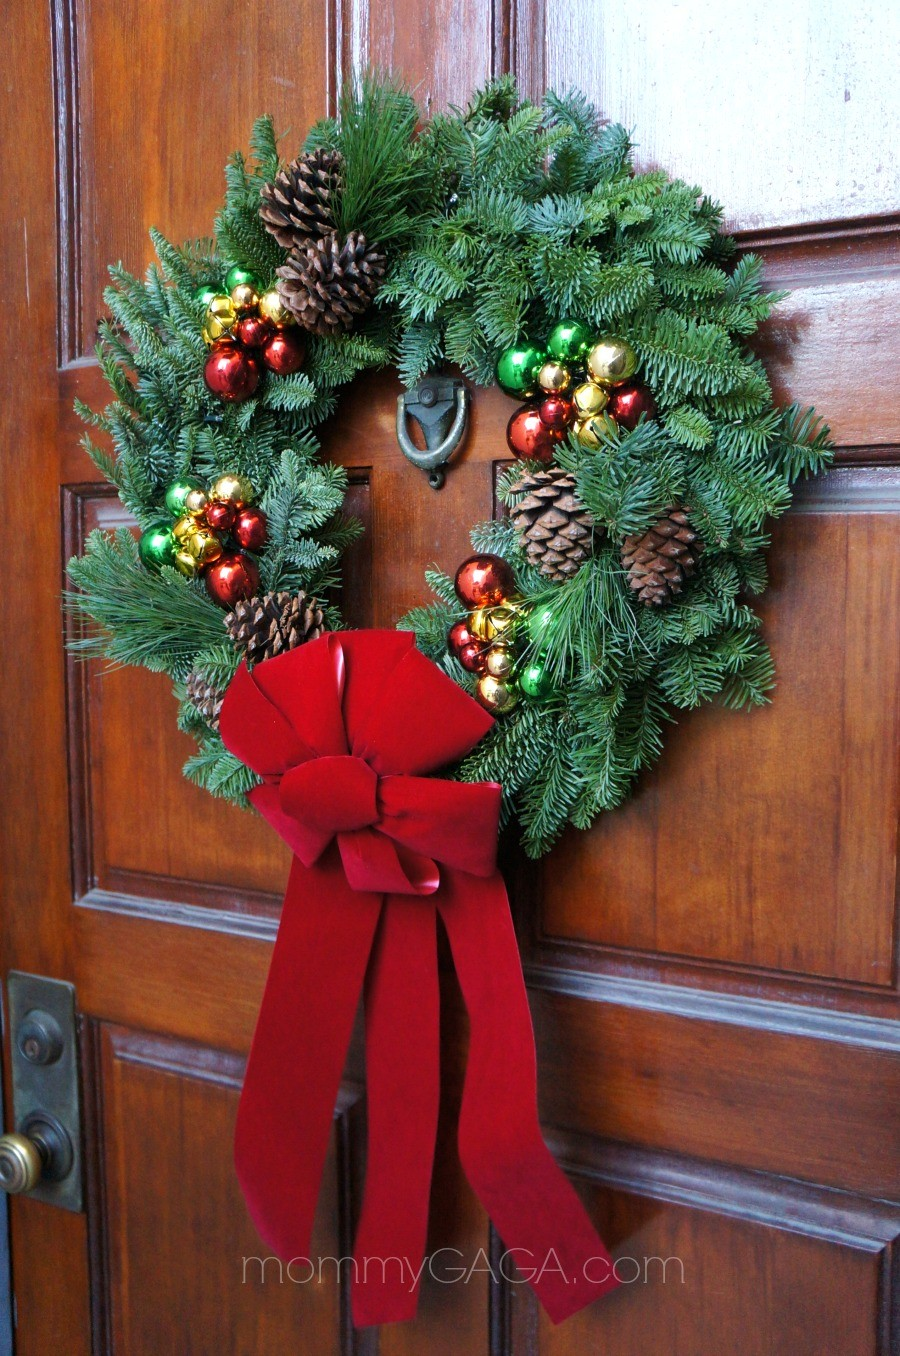 Simple Holiday Home Decorating The Front Door Entryway With A Festive Christmas Wreath  Honey